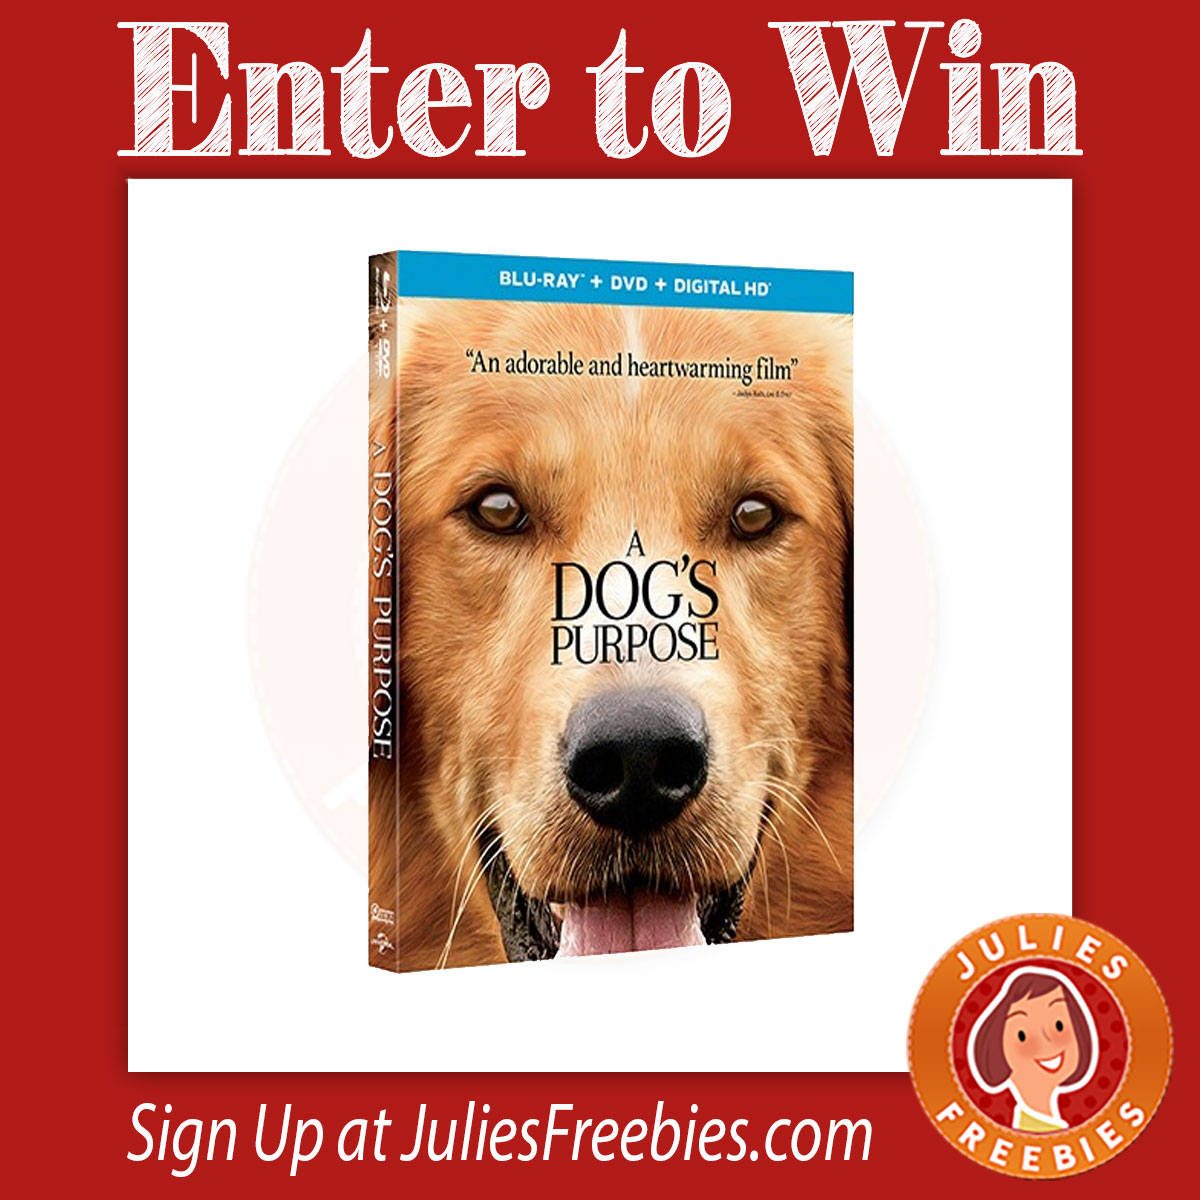 Enter To Win 1 000 Gift Card From Blu Dot: Win A Dog's Purpose Prize Pack